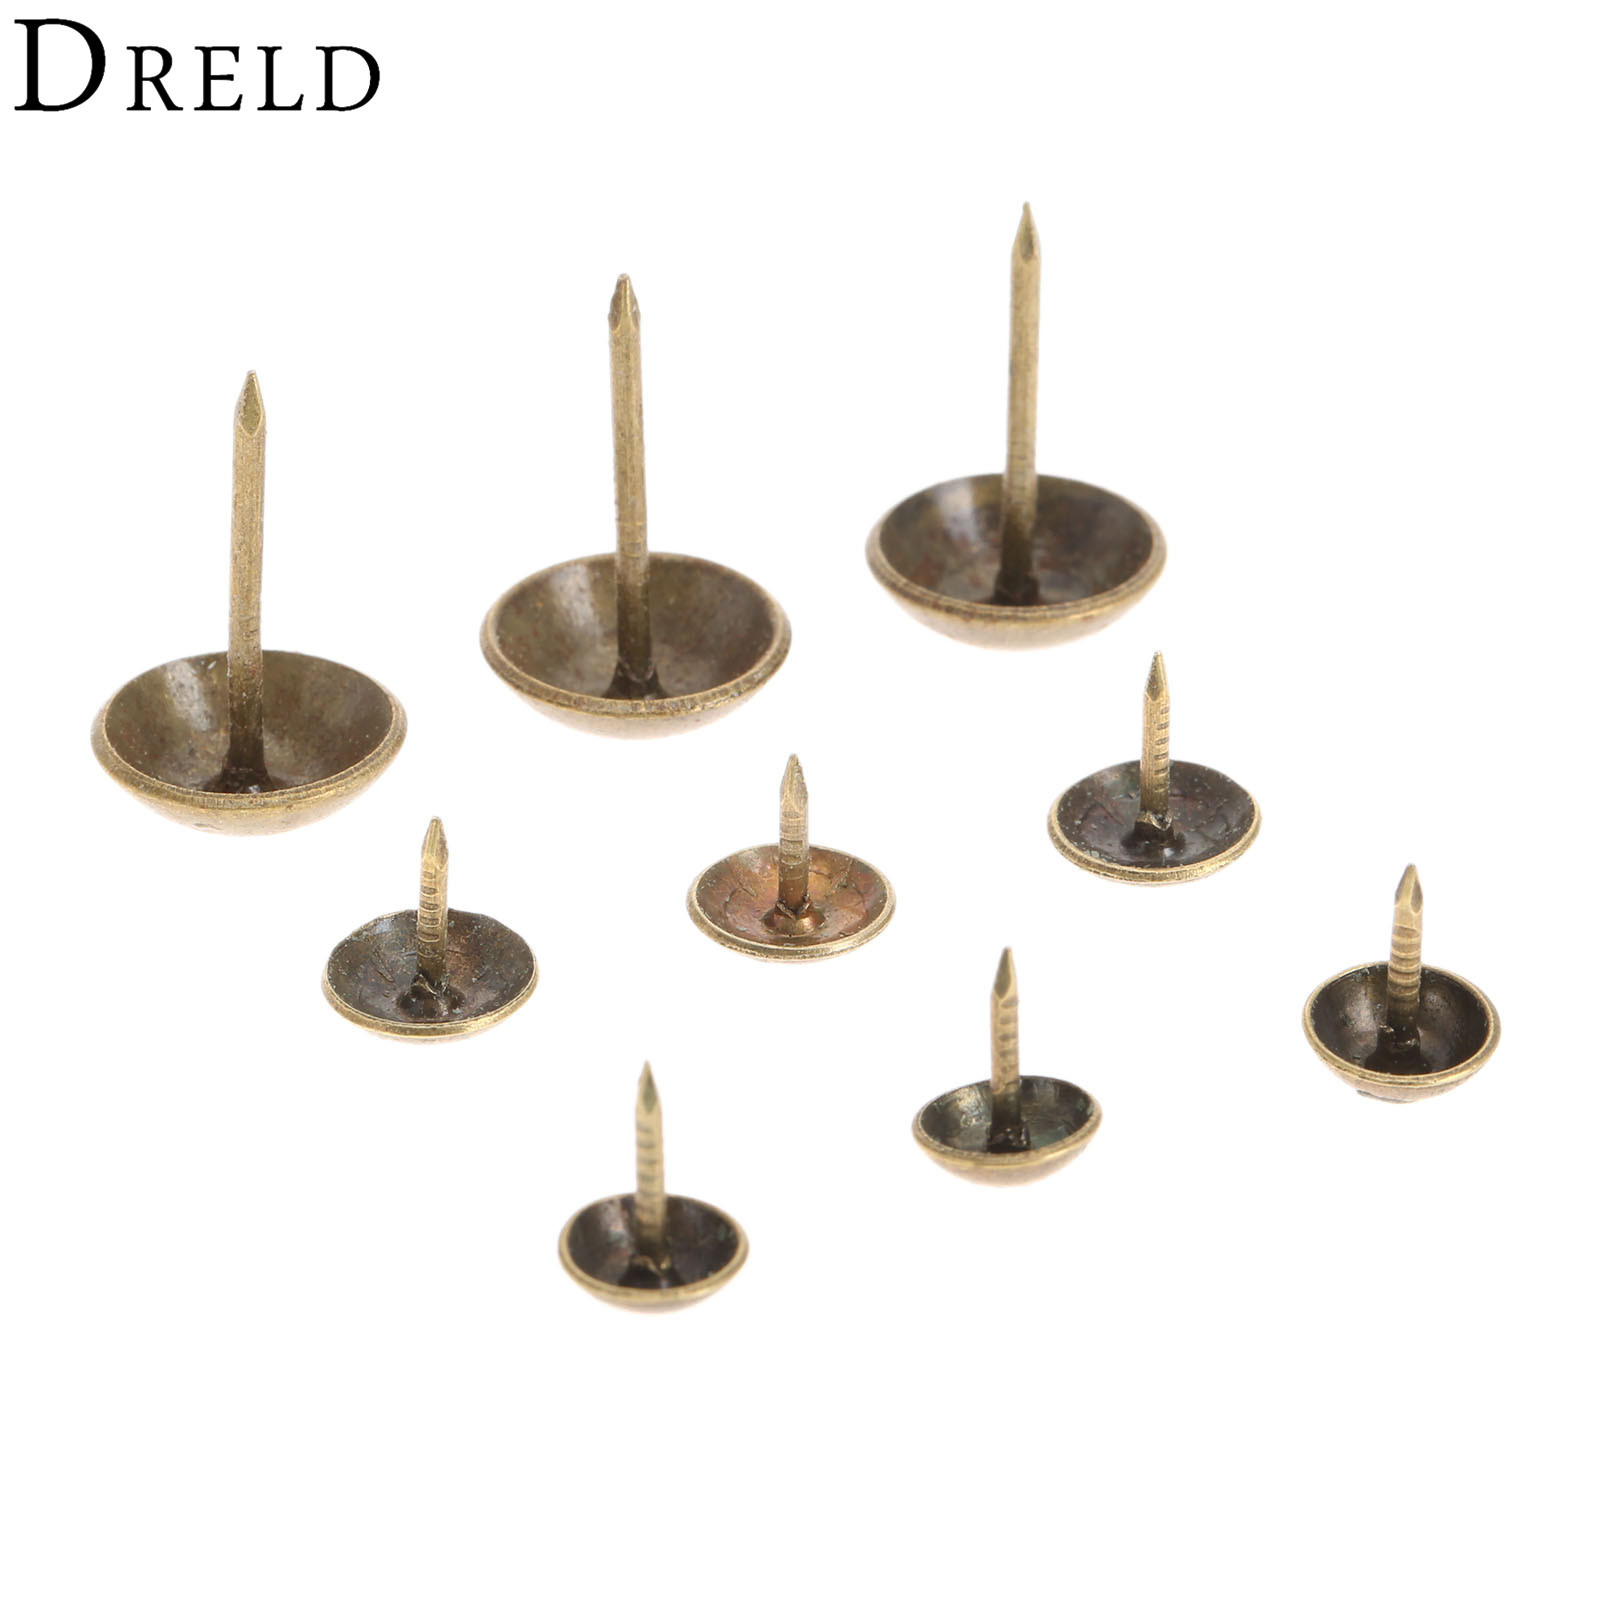 100Pcs Antique Brass Bronze Upholstery Nail Jewelry Gift Wine Case Box Sofa Decorative Tack Stud Pushpin Doornail Hardware